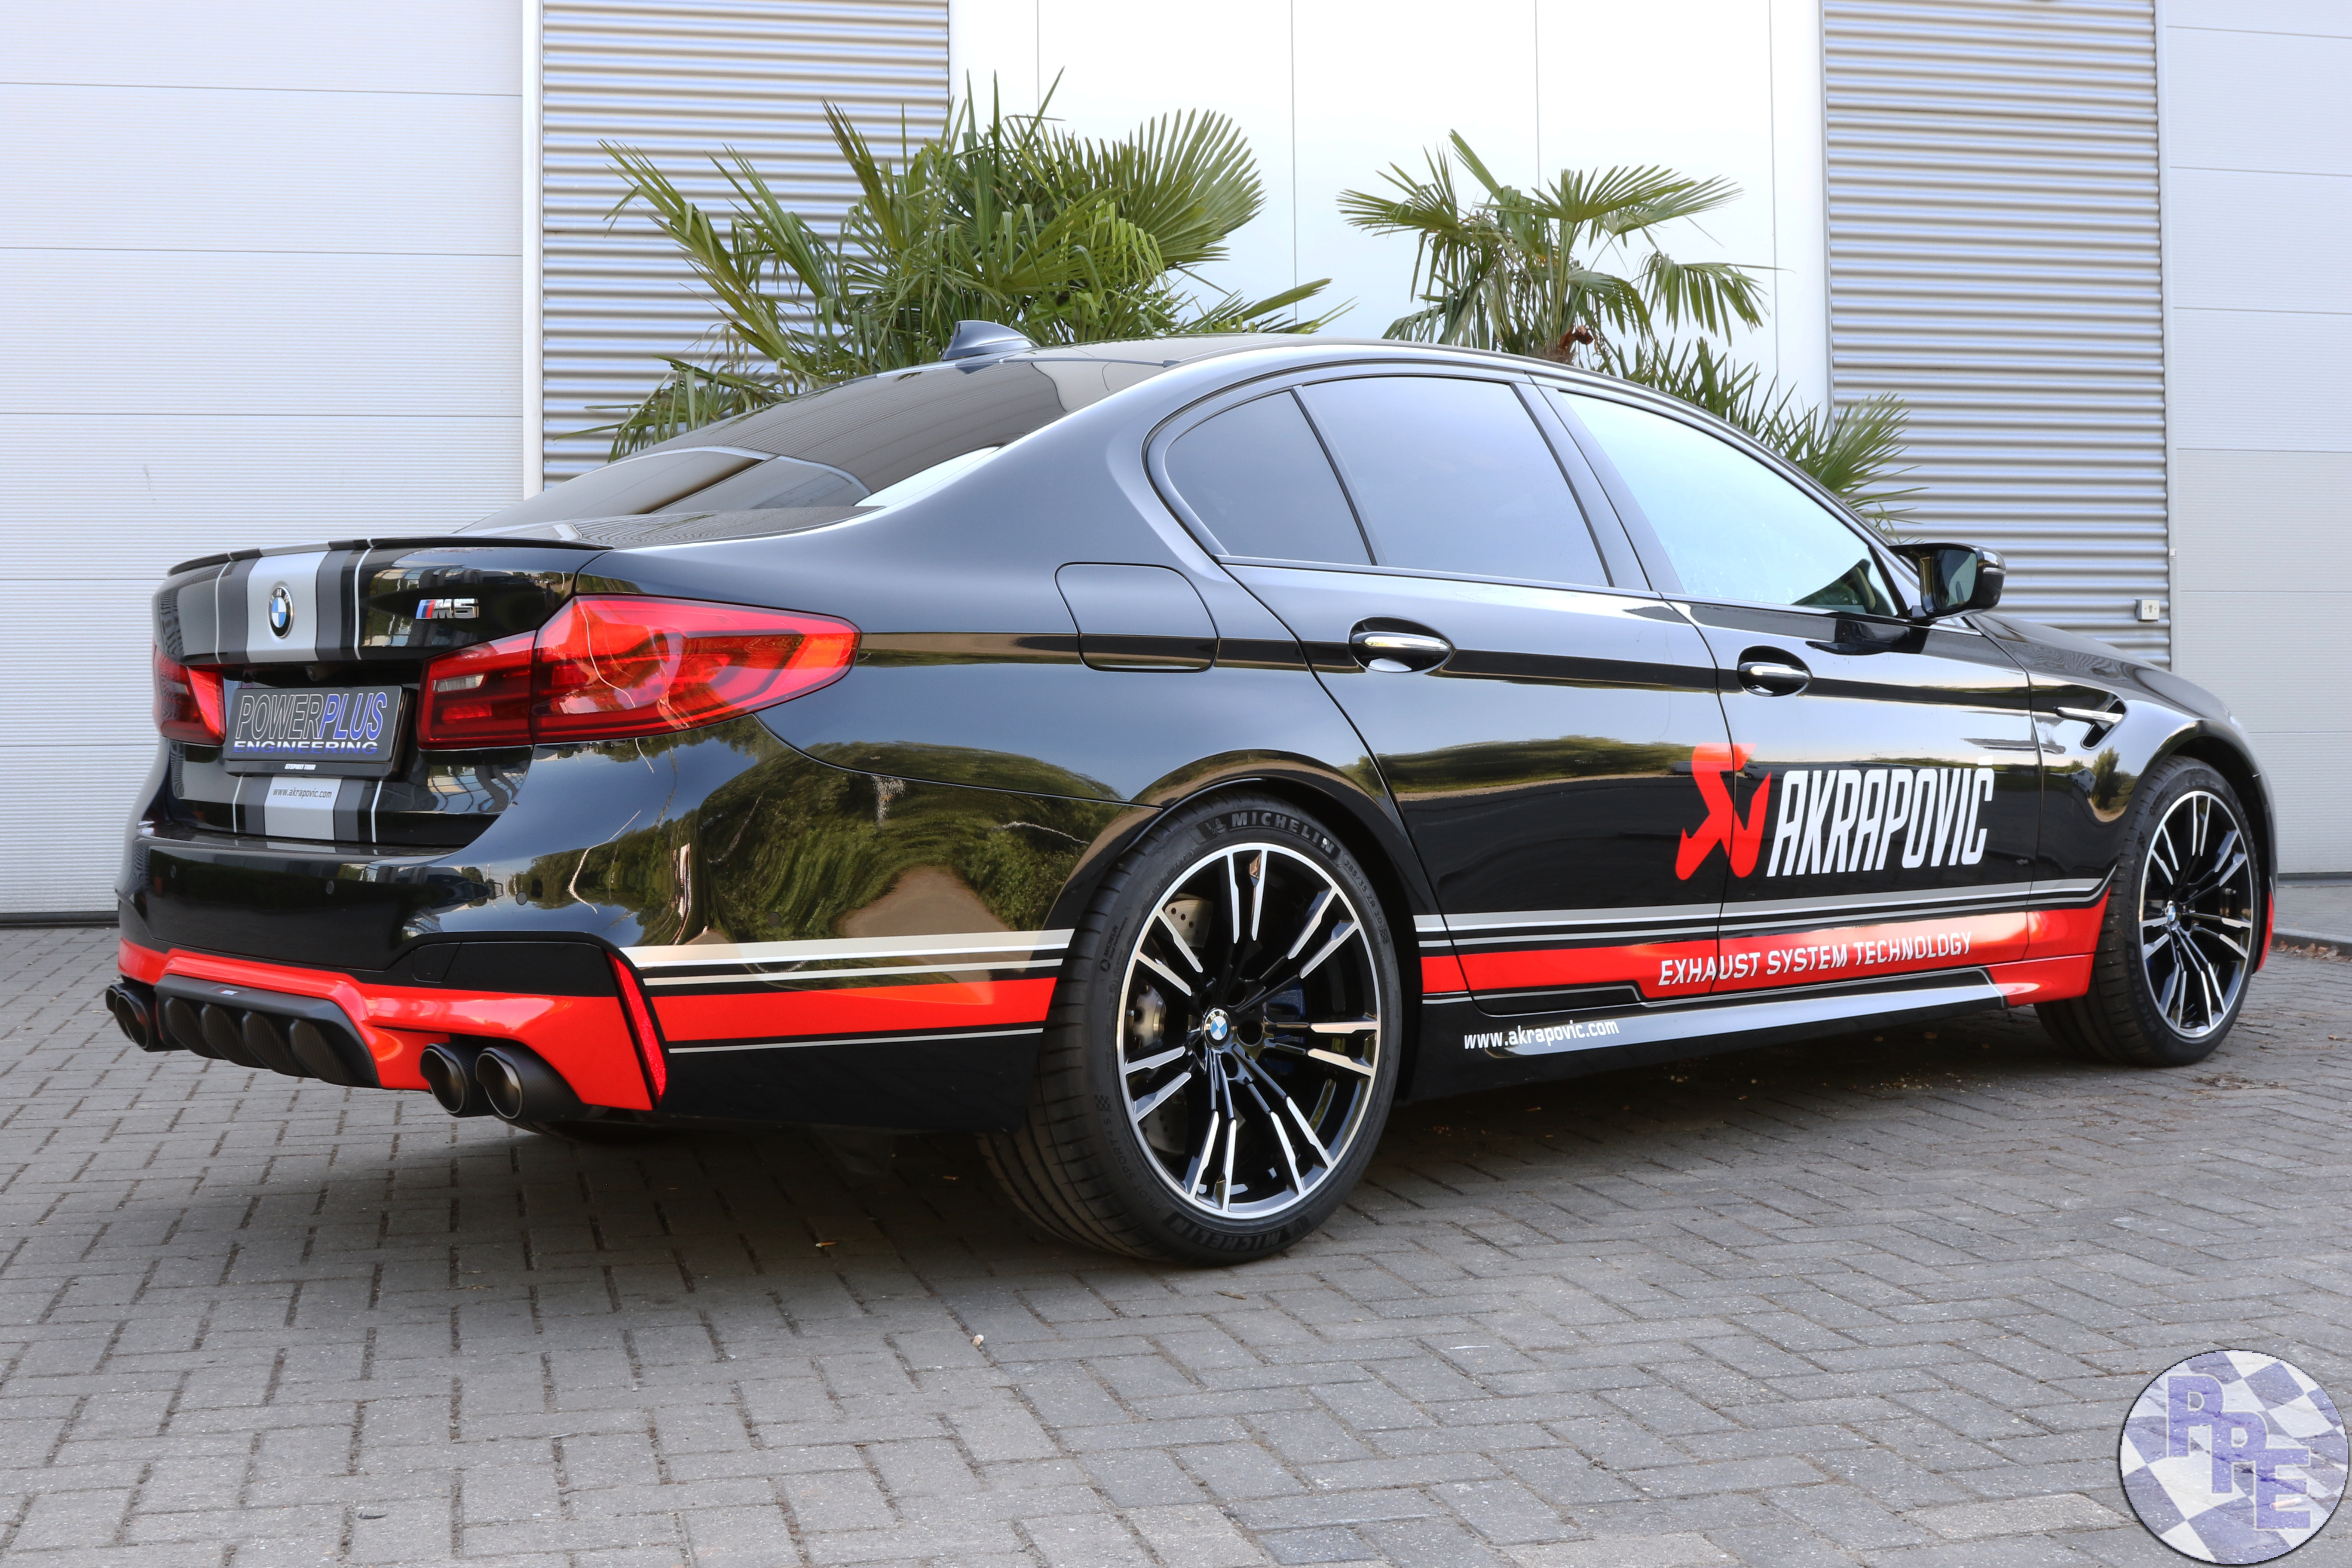 BMW ///M5 F90 equipped with the first Akrapovic Exhaust System at